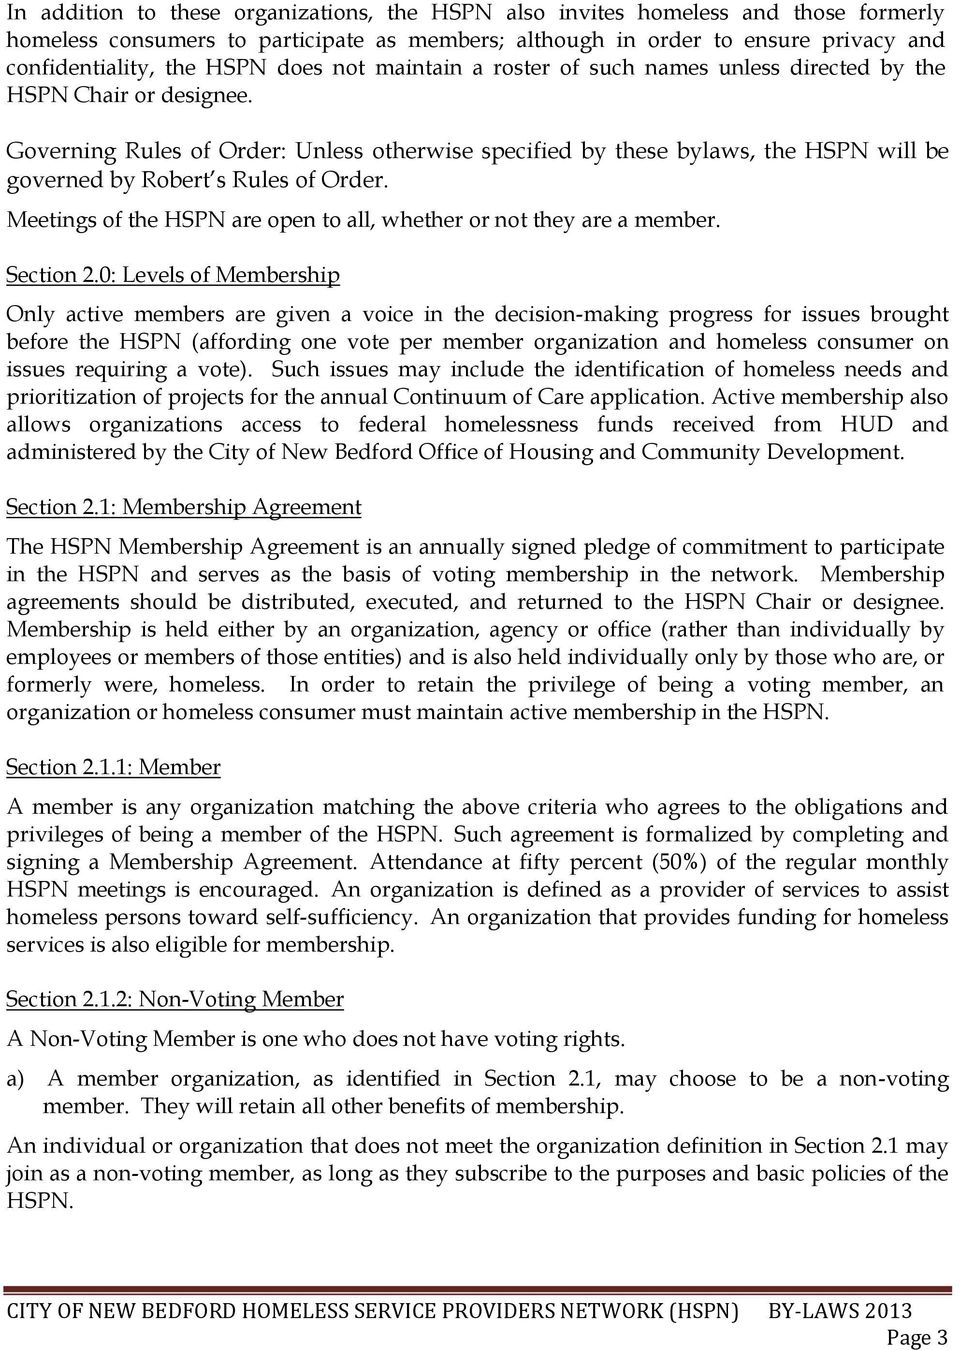 Governing Rules of Order: Unless otherwise specified by these bylaws, the HSPN will be governed by Robert s Rules of Order. Meetings of the HSPN are open to all, whether or not they are a member.